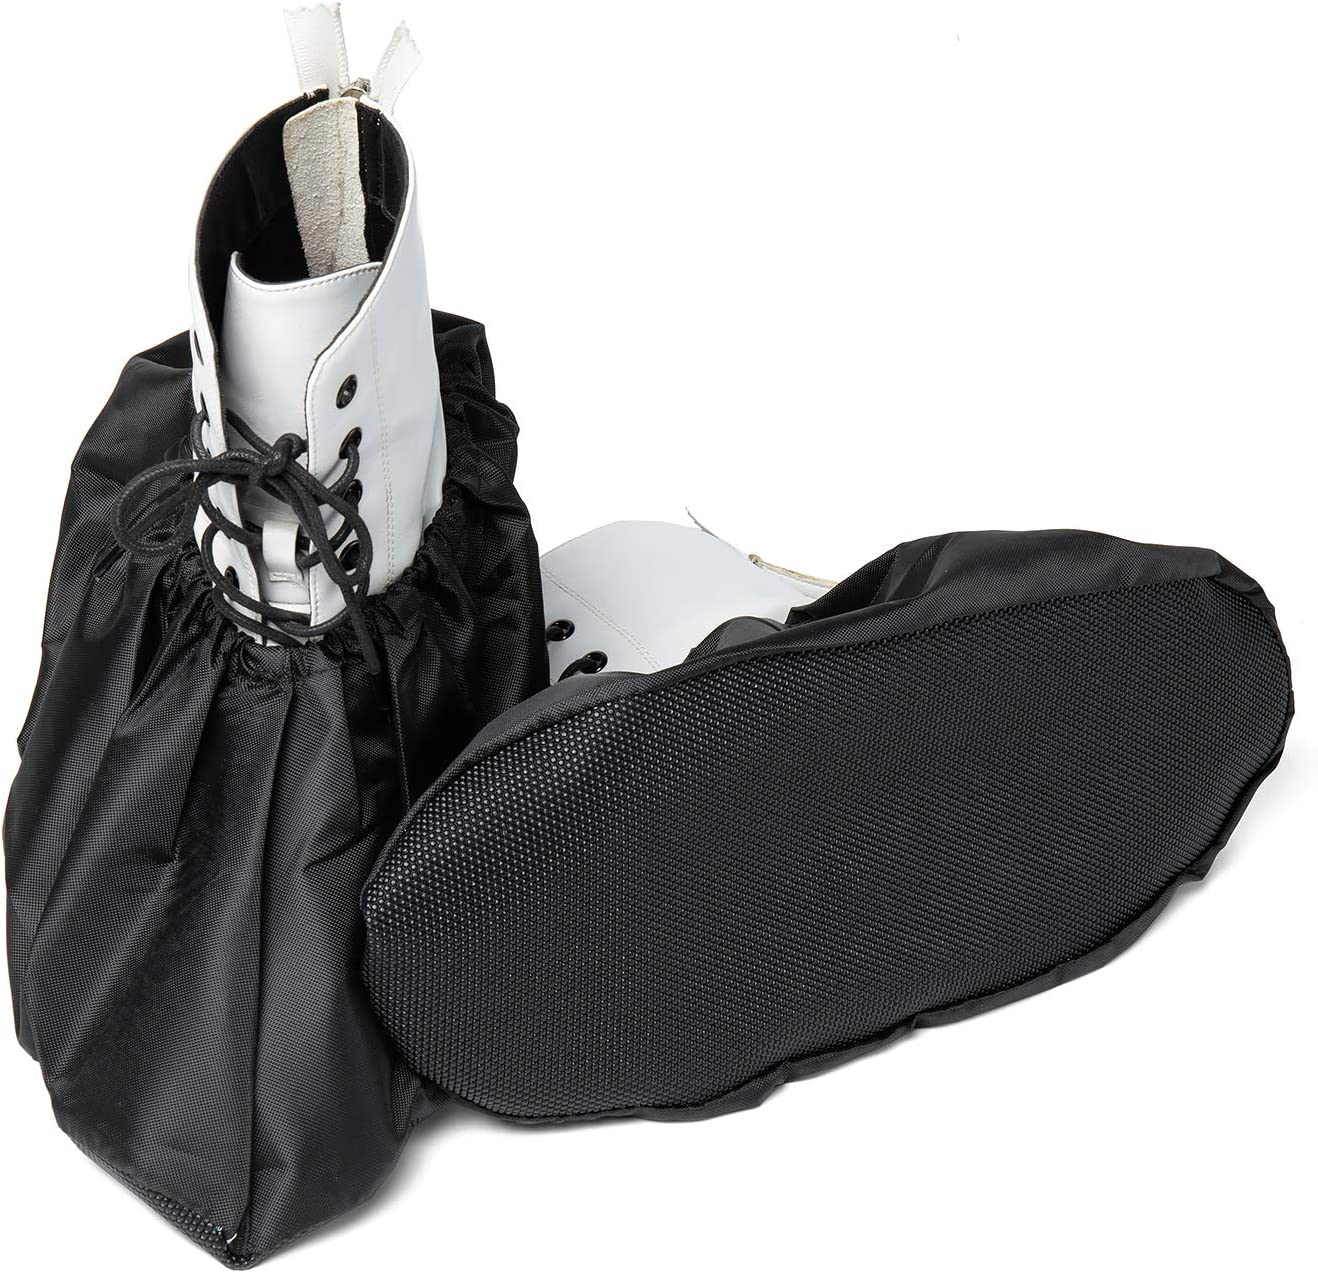 Blue Shoe Guys Professional Reusable Ranking TOP1 Waterpr Inexpensive Covers Boot